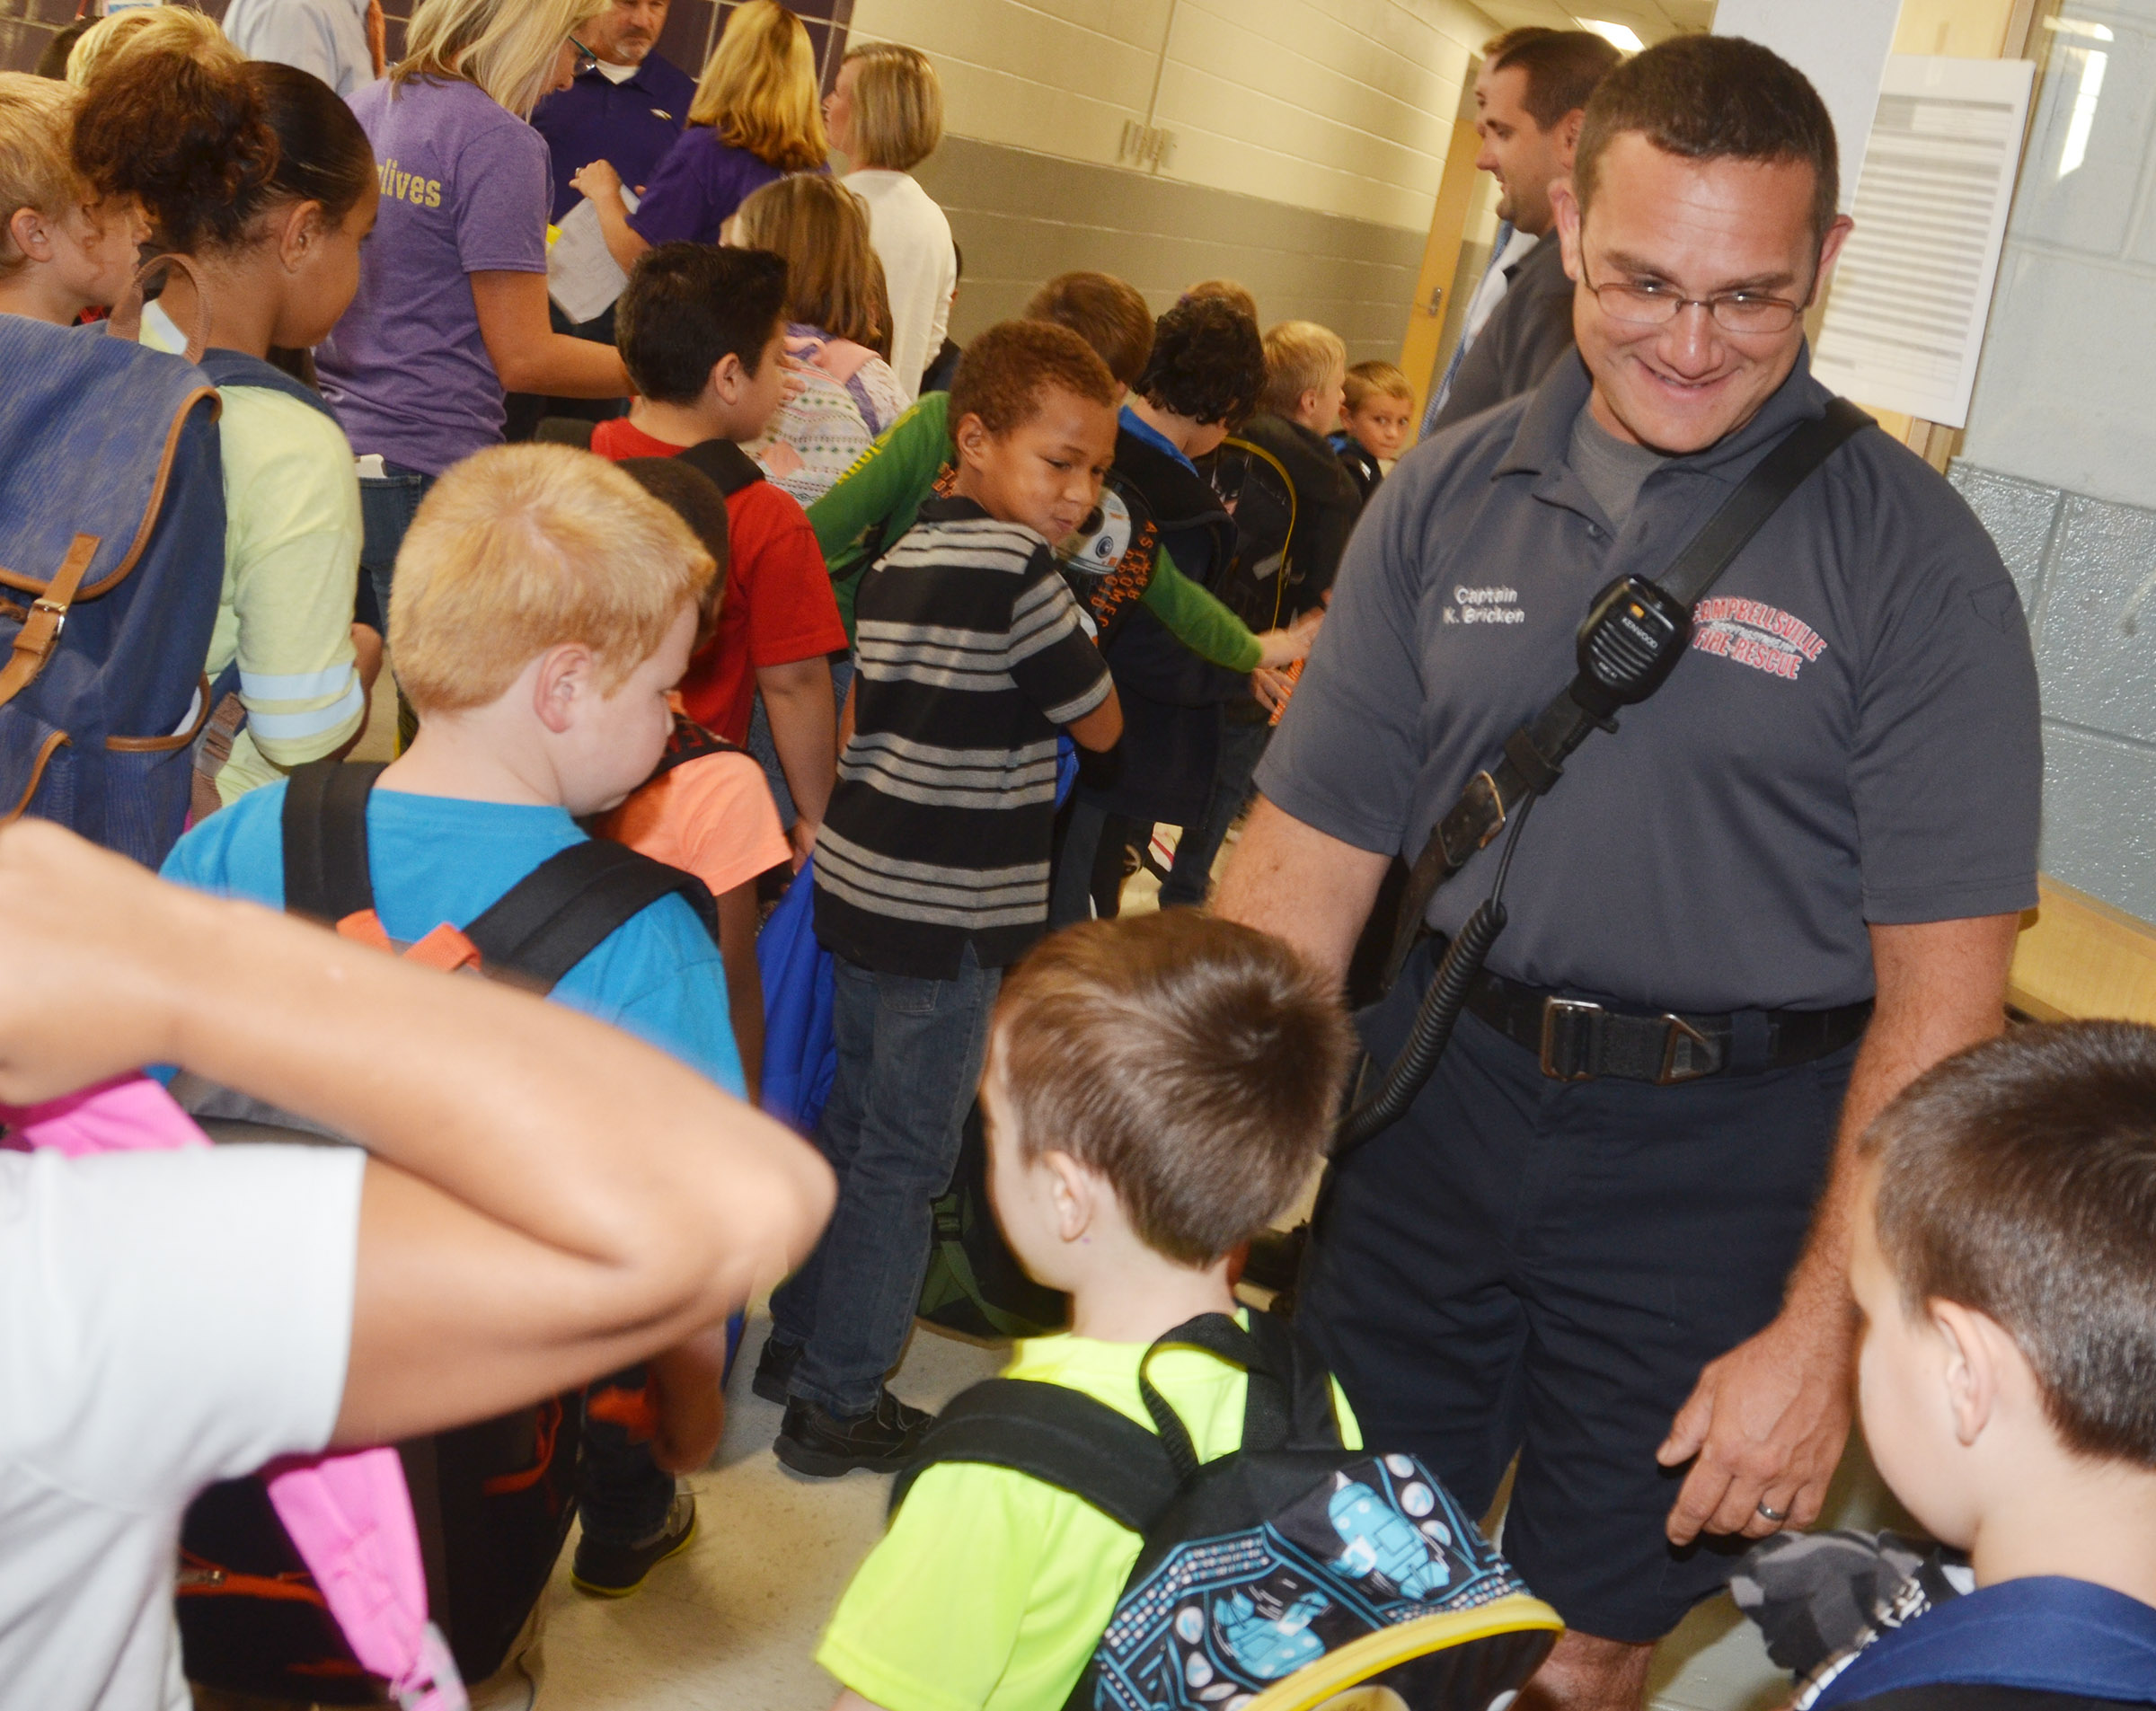 Campbellsville Fire & Rescue Captain Keith Bricken greets CES students.